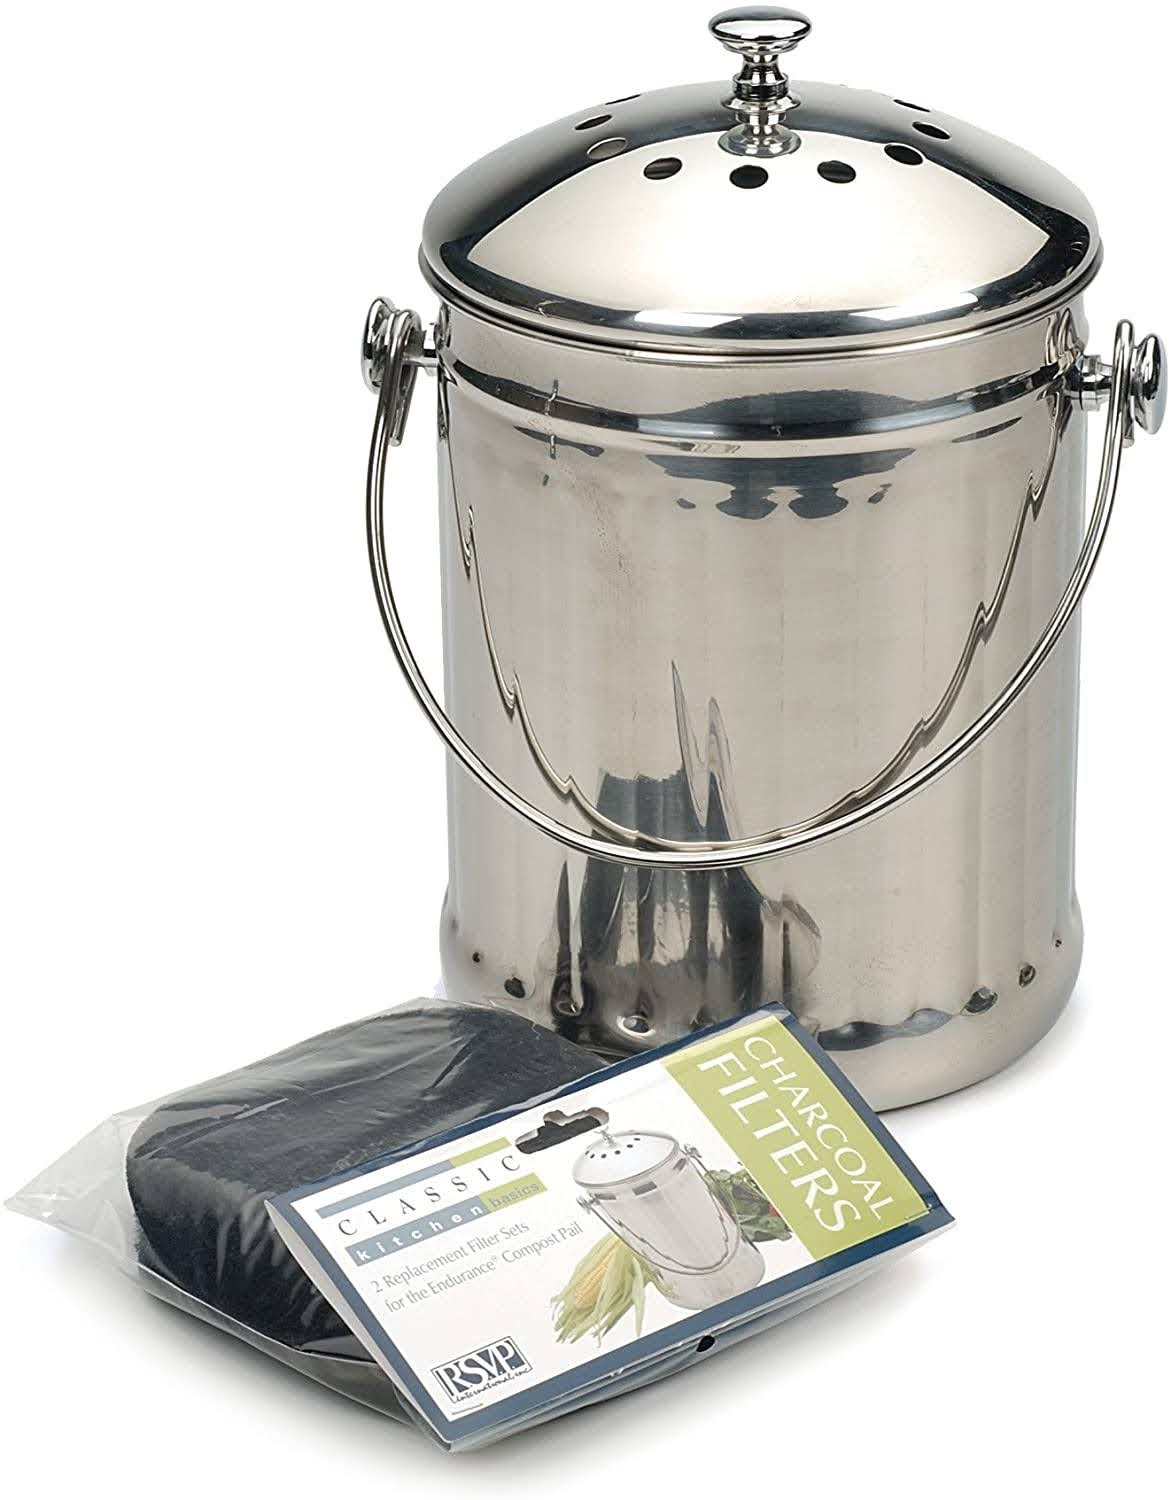 Stainless Steel Compost Pail with Charcoal Filters | Photo via Amazon